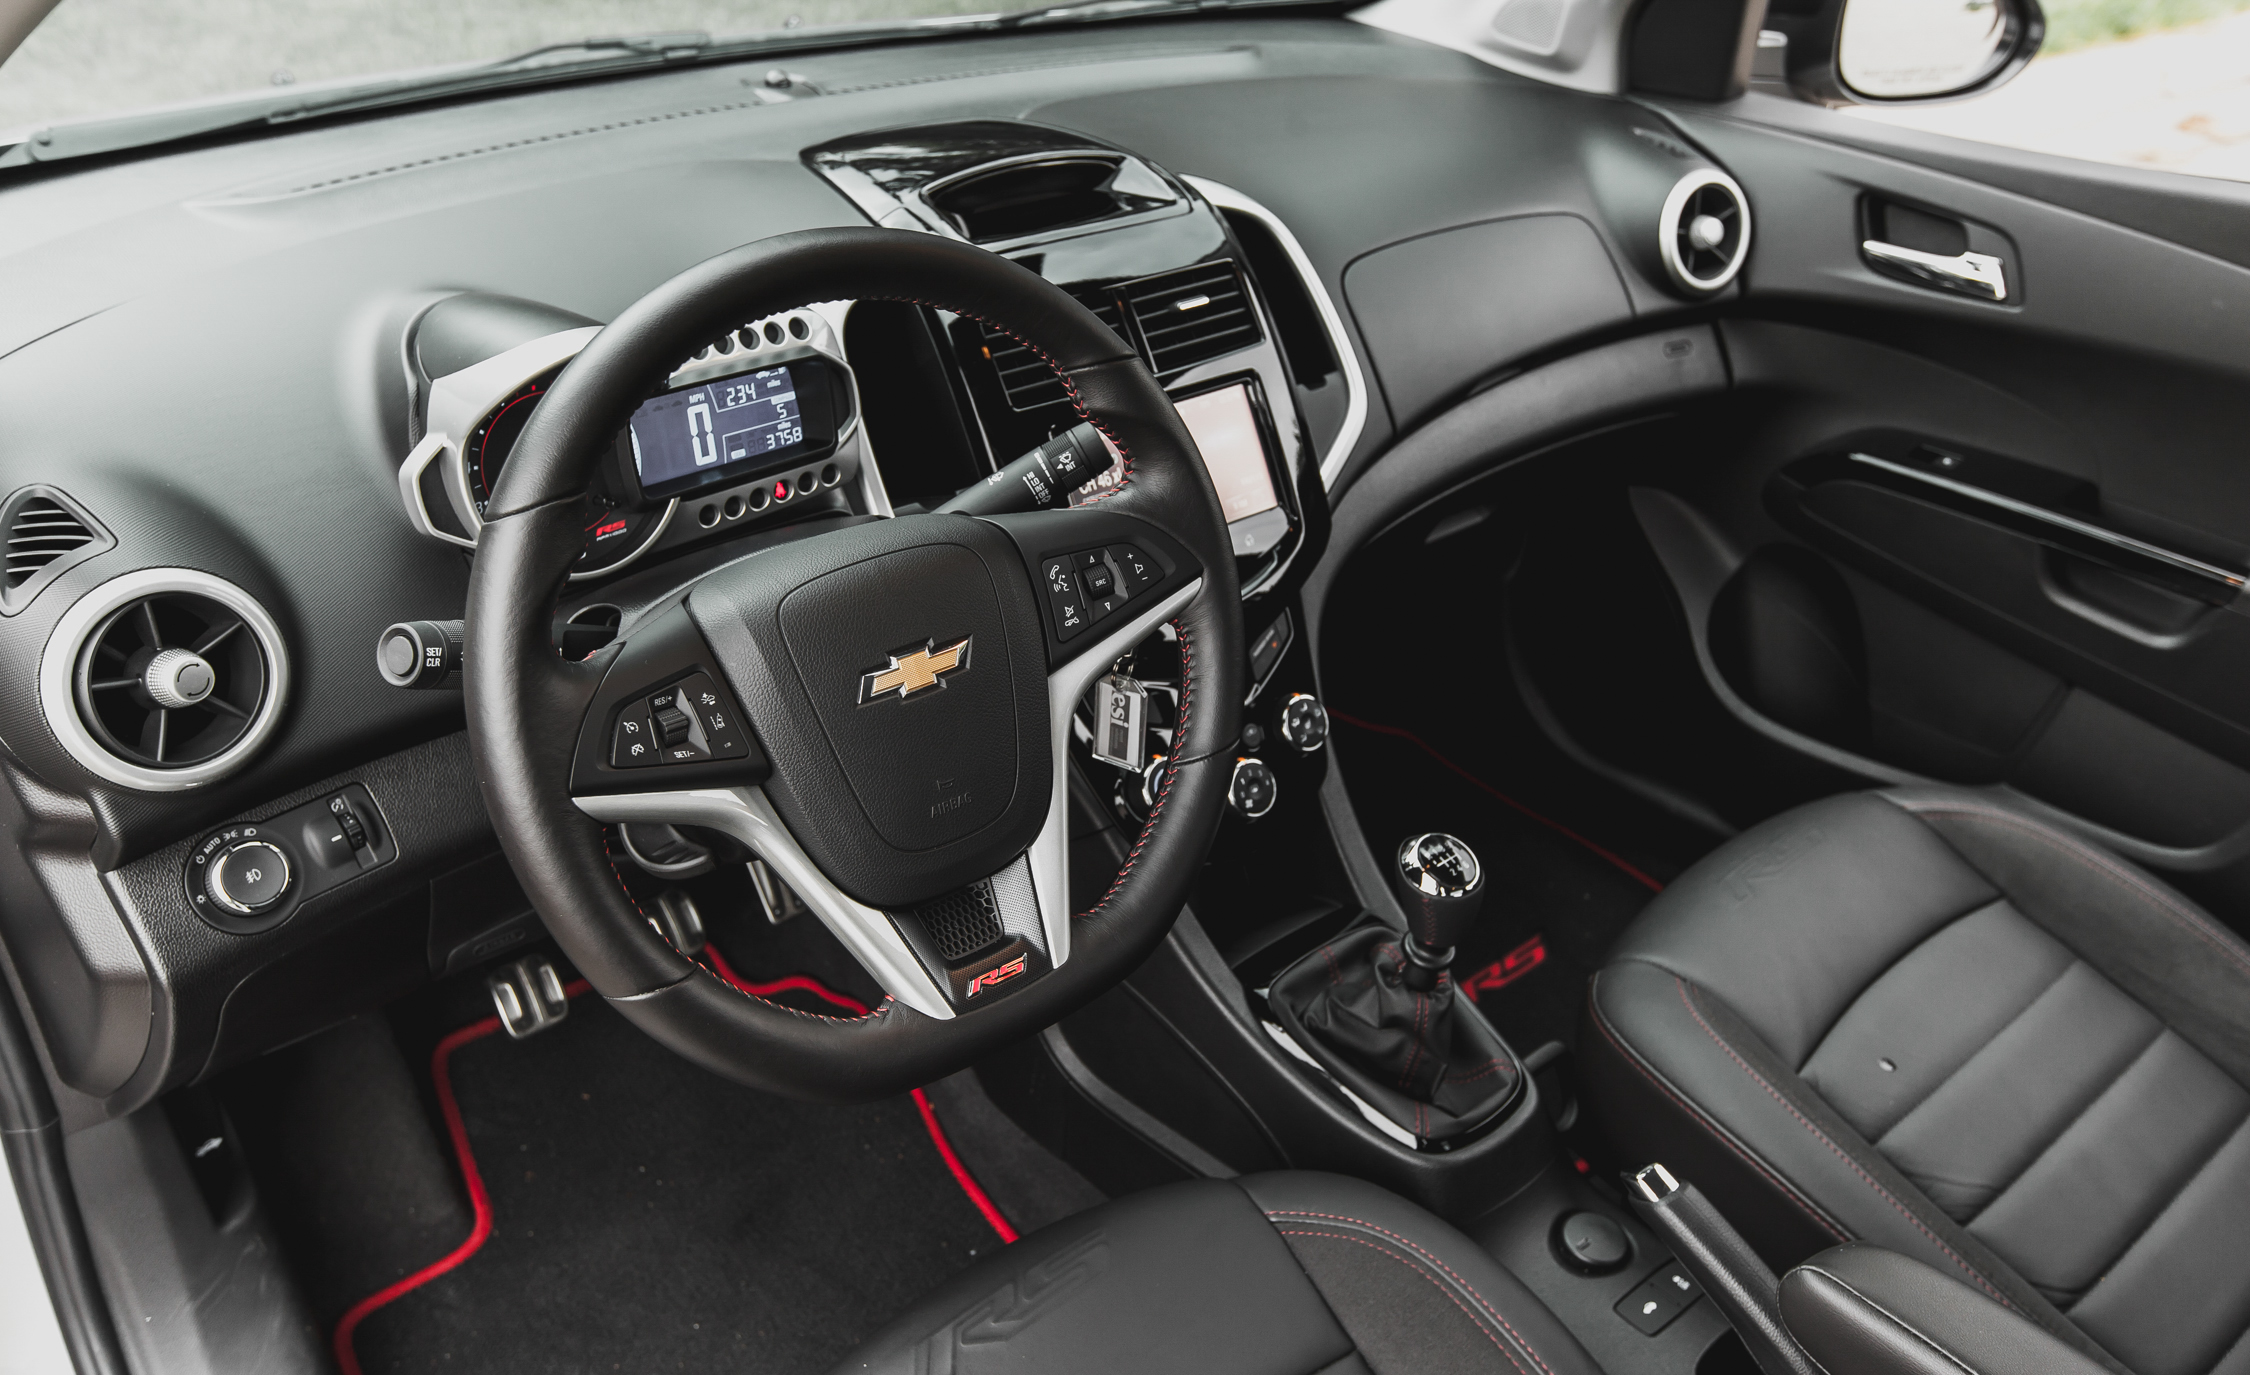 2014 Chevrolet Sonic RS Sedan Interior (Photo 24 of 27)